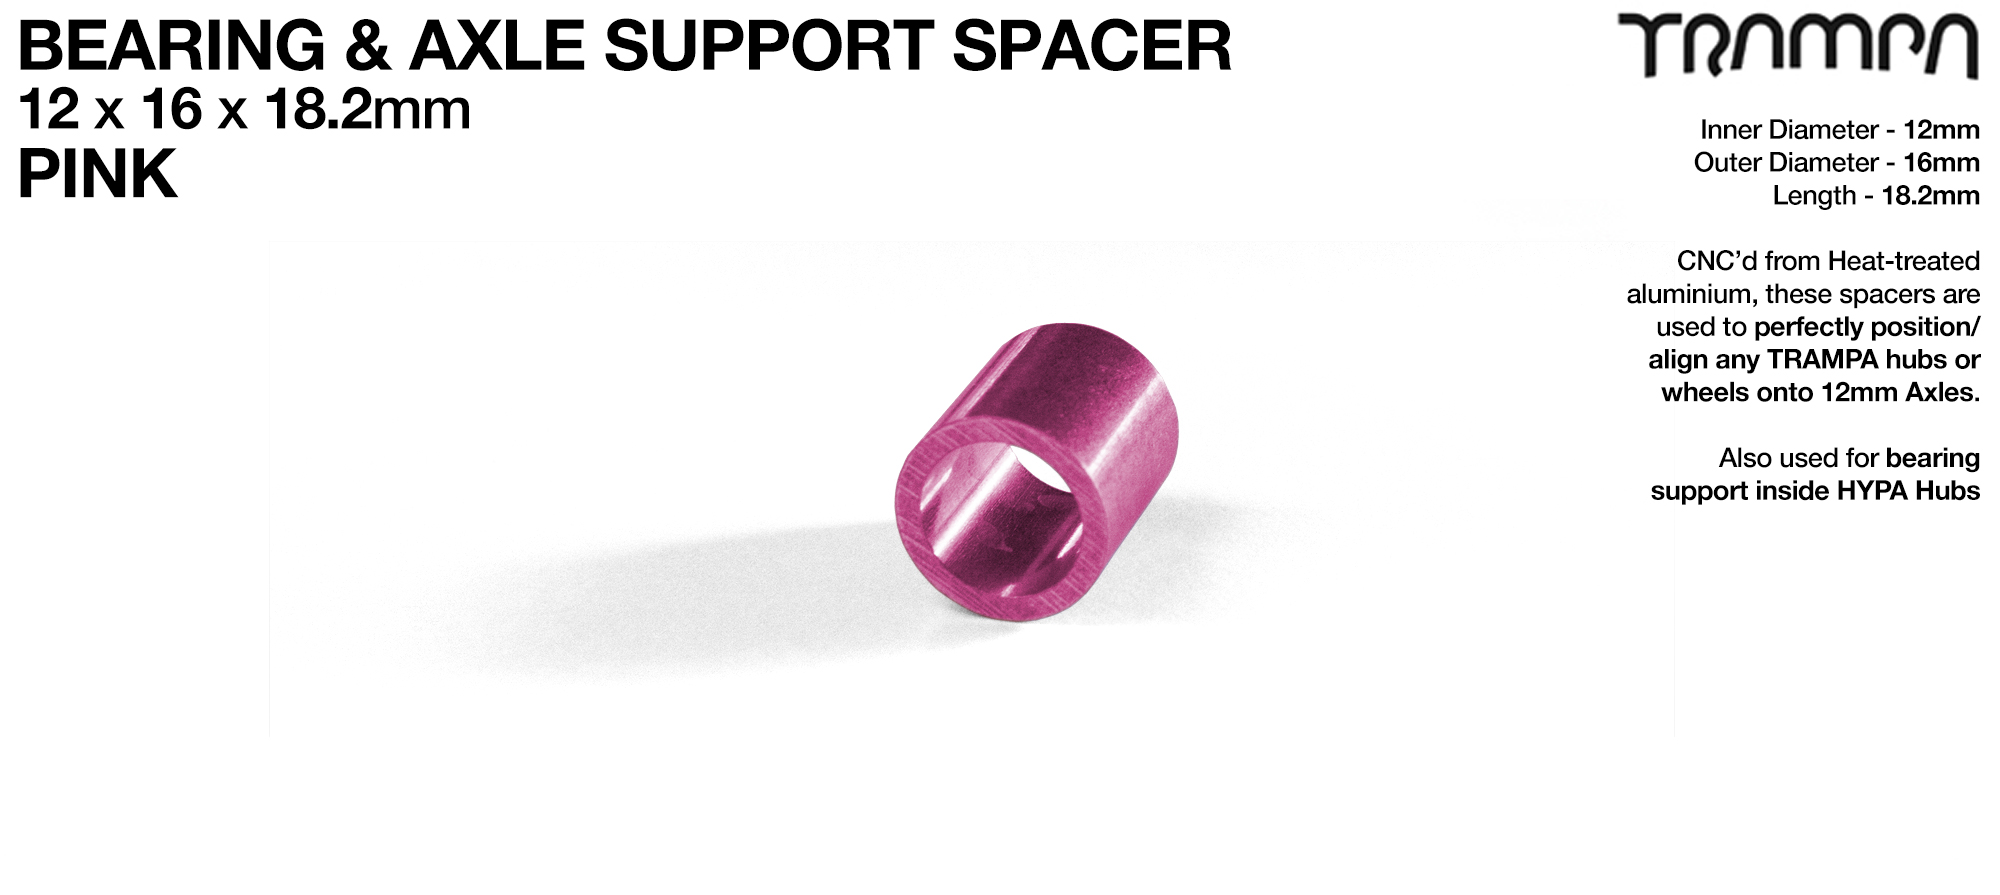 Wheel support spacer for all TRAMPA Wheels on 12mm ATB Axles - CNC precision 12mm x 16mm x 18.2mm  - PINK